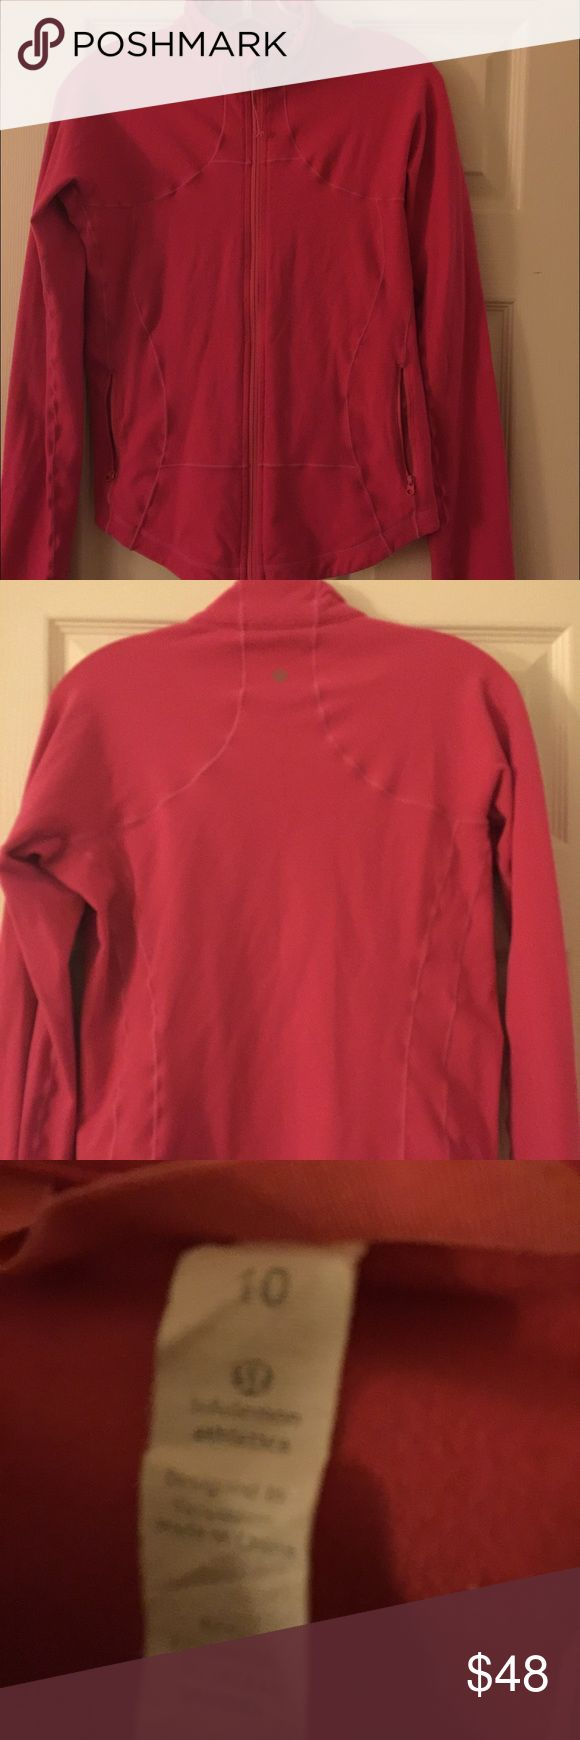 Lululemon raspberry pink define jacket size 10 Lululemon raspberry pink define jacket. Doesn't have thumb holes. The zipper is in perfect condition but the elastic pull is coming off. Otherwise it's in fantastic condition. I didn't wear it that often but has minor piling throughout. Size 10!! lululemon athletica Jackets & Coats